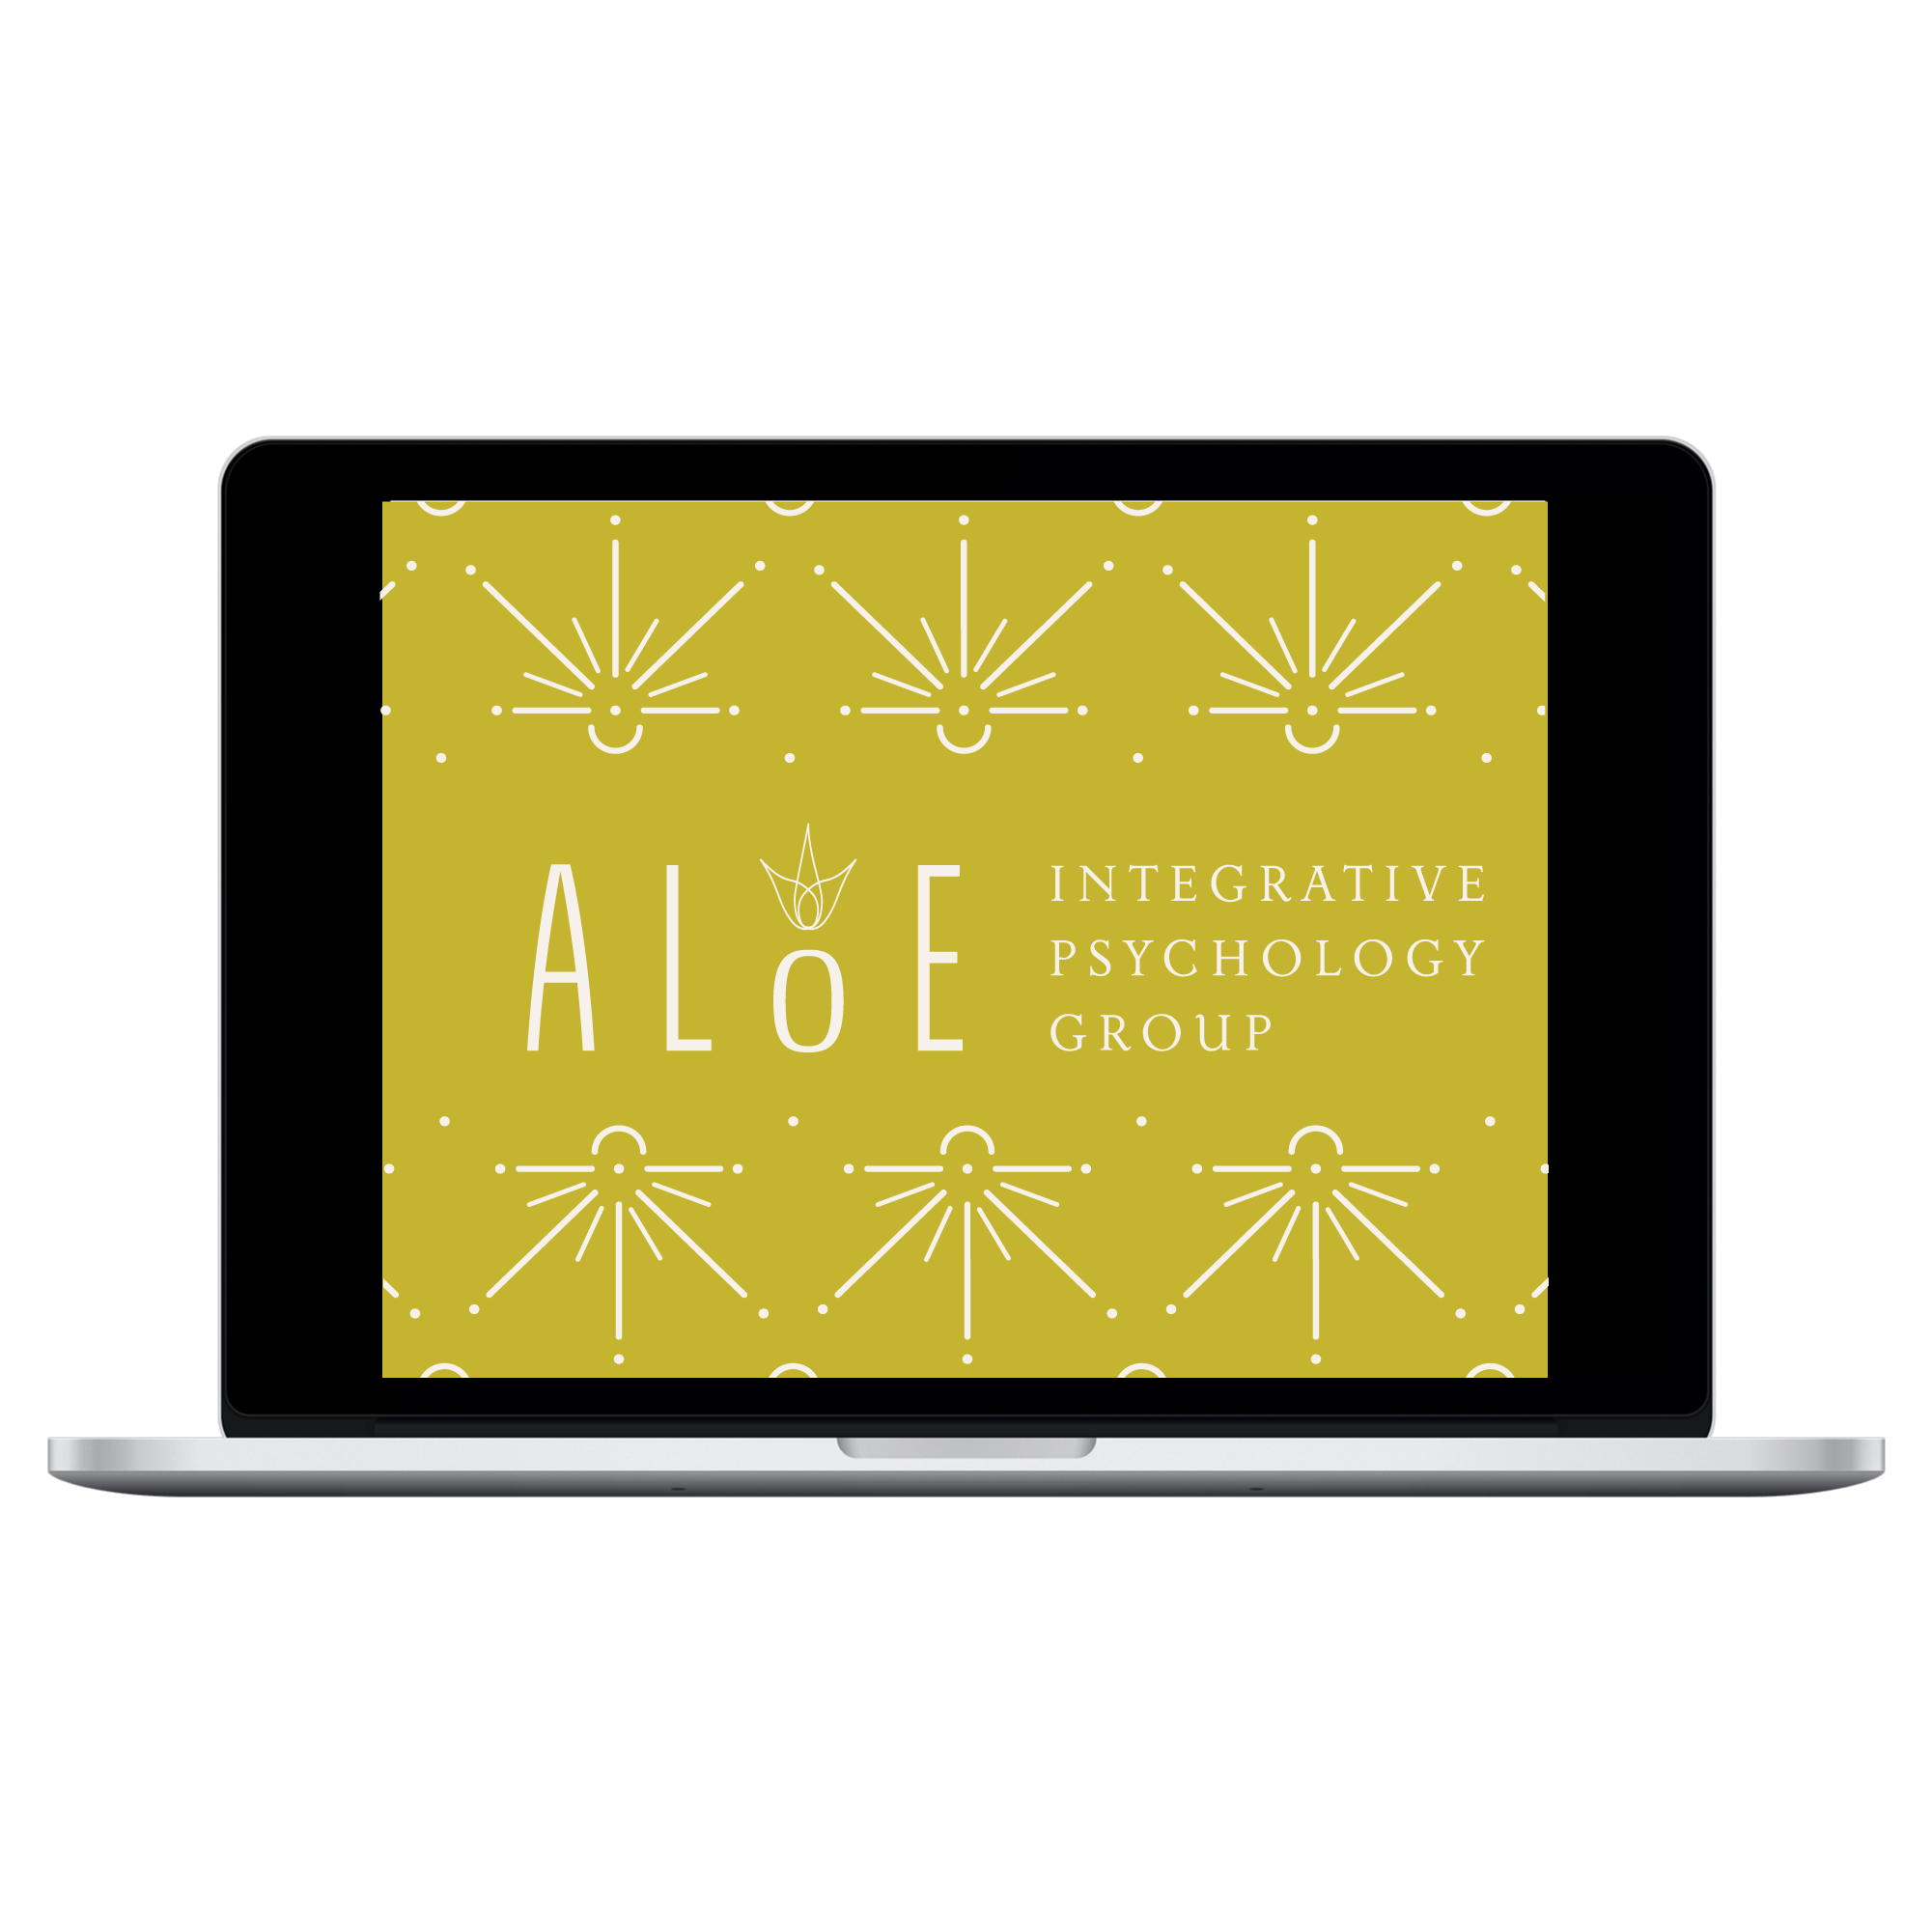 Branding - For Dr. Nicole Law of Aloe Integrative Psychology Group